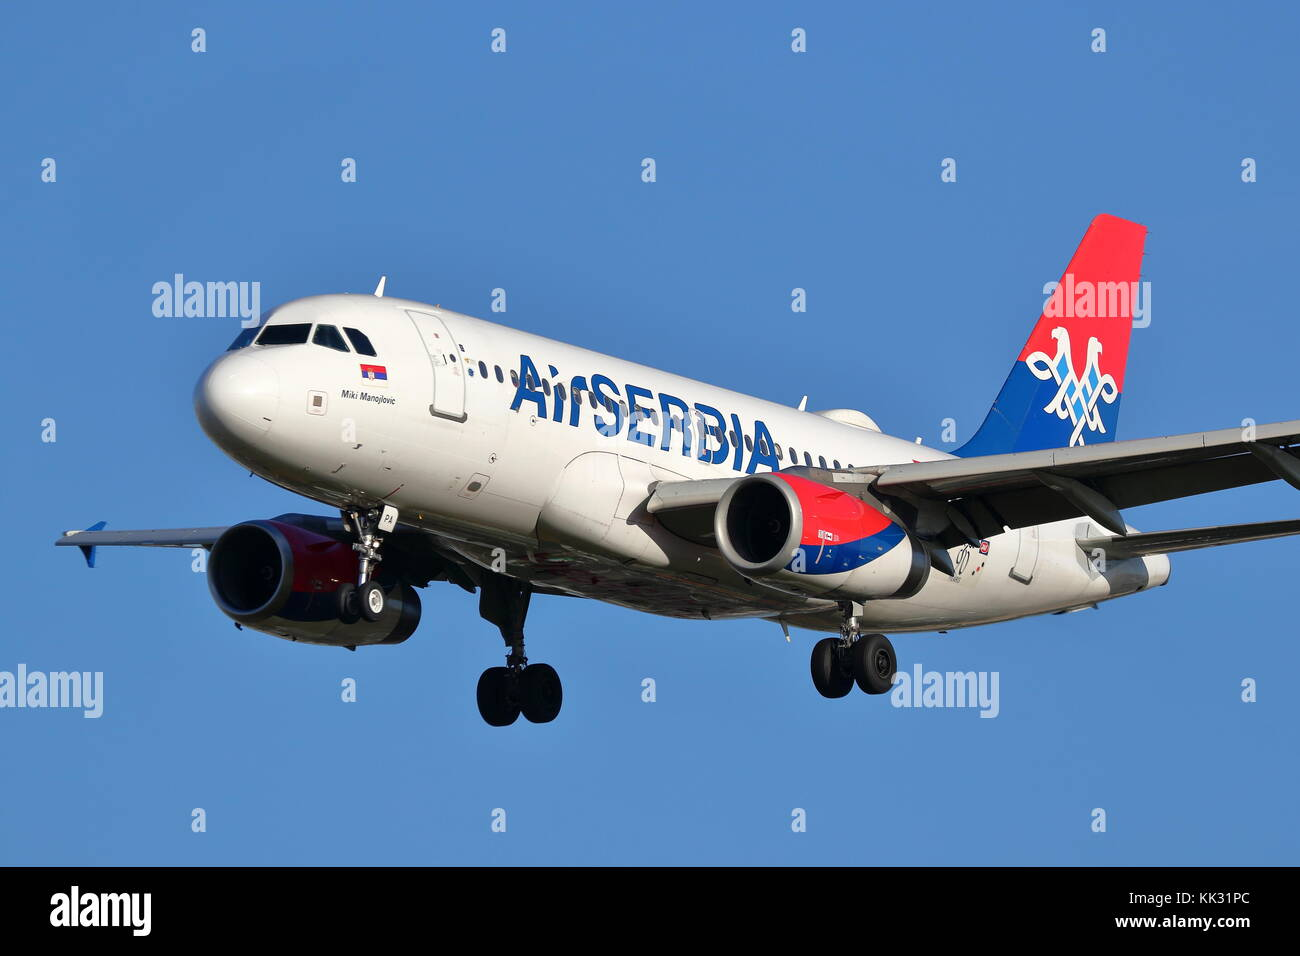 Air Serbia Airbus A319 YU-APA landing at London Heathrow Airport, UK - Stock Image